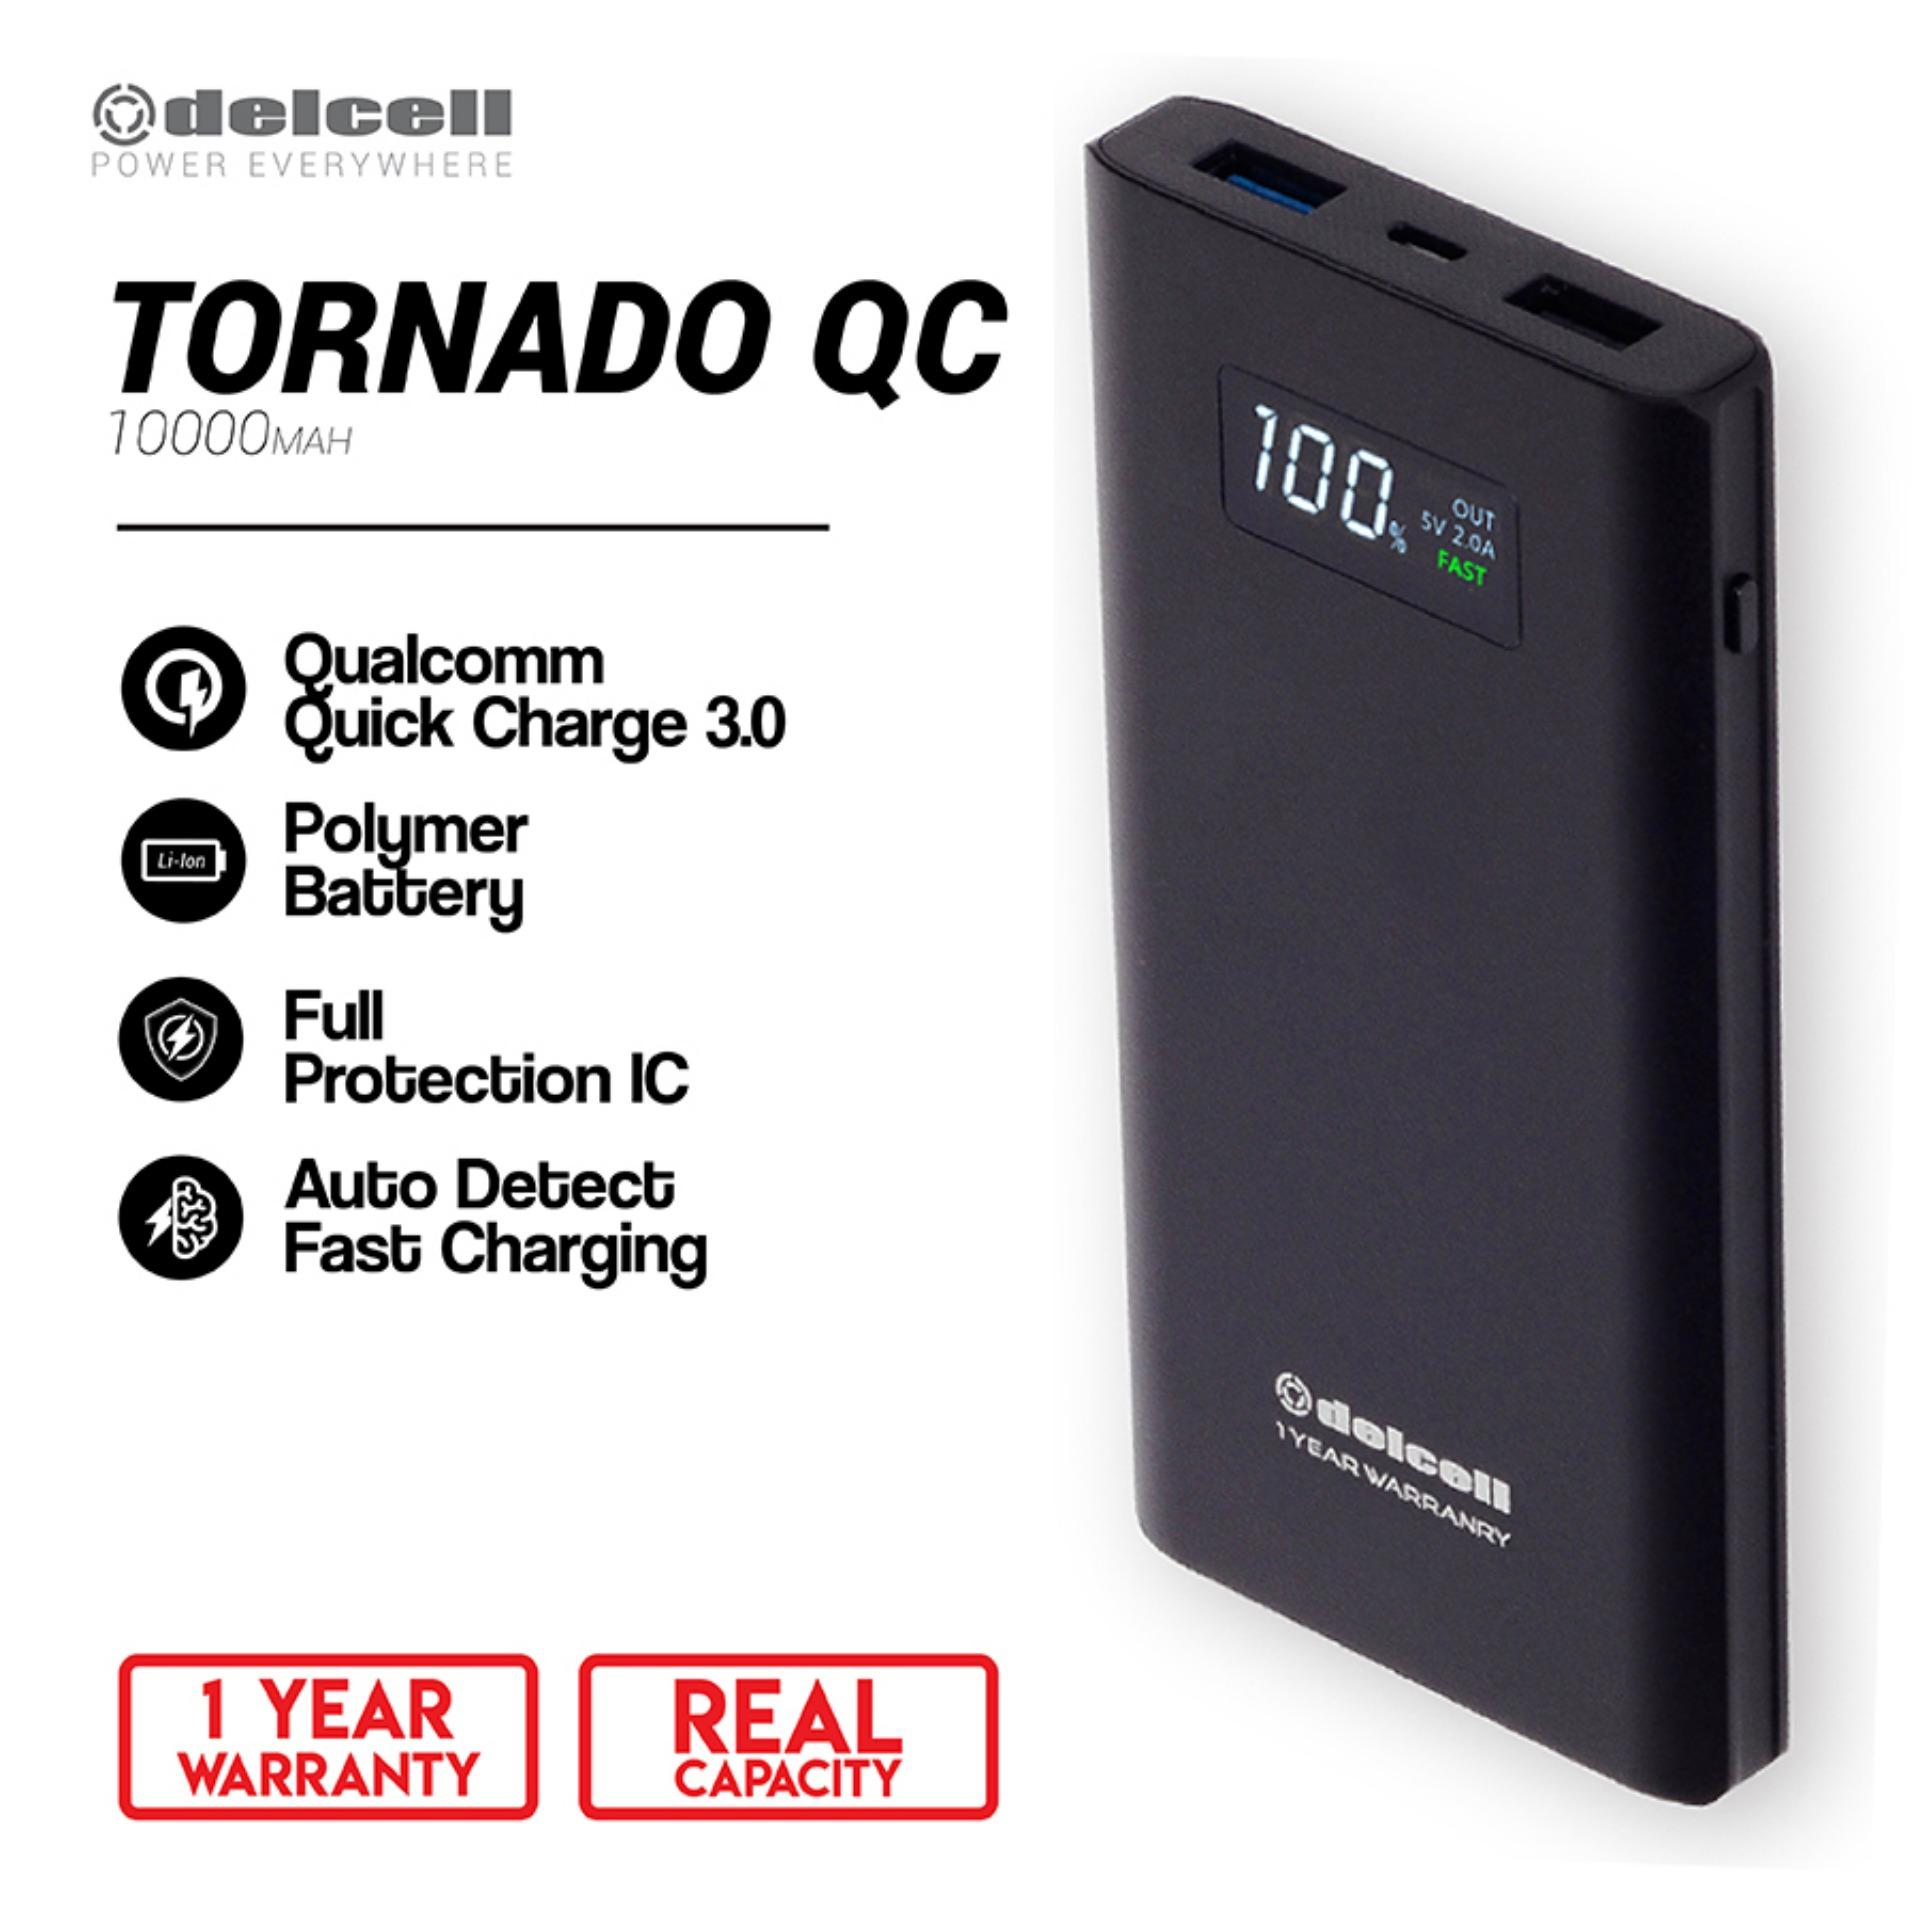 Delcell 10000mAh Powerbank TORNADO Support Quick Charge 3.0A Real Capacity Polymer Battery Slim Powerbank Garansi Resmi 1 Tahun Dual Output Power Bank Berkualitas - Black - Black